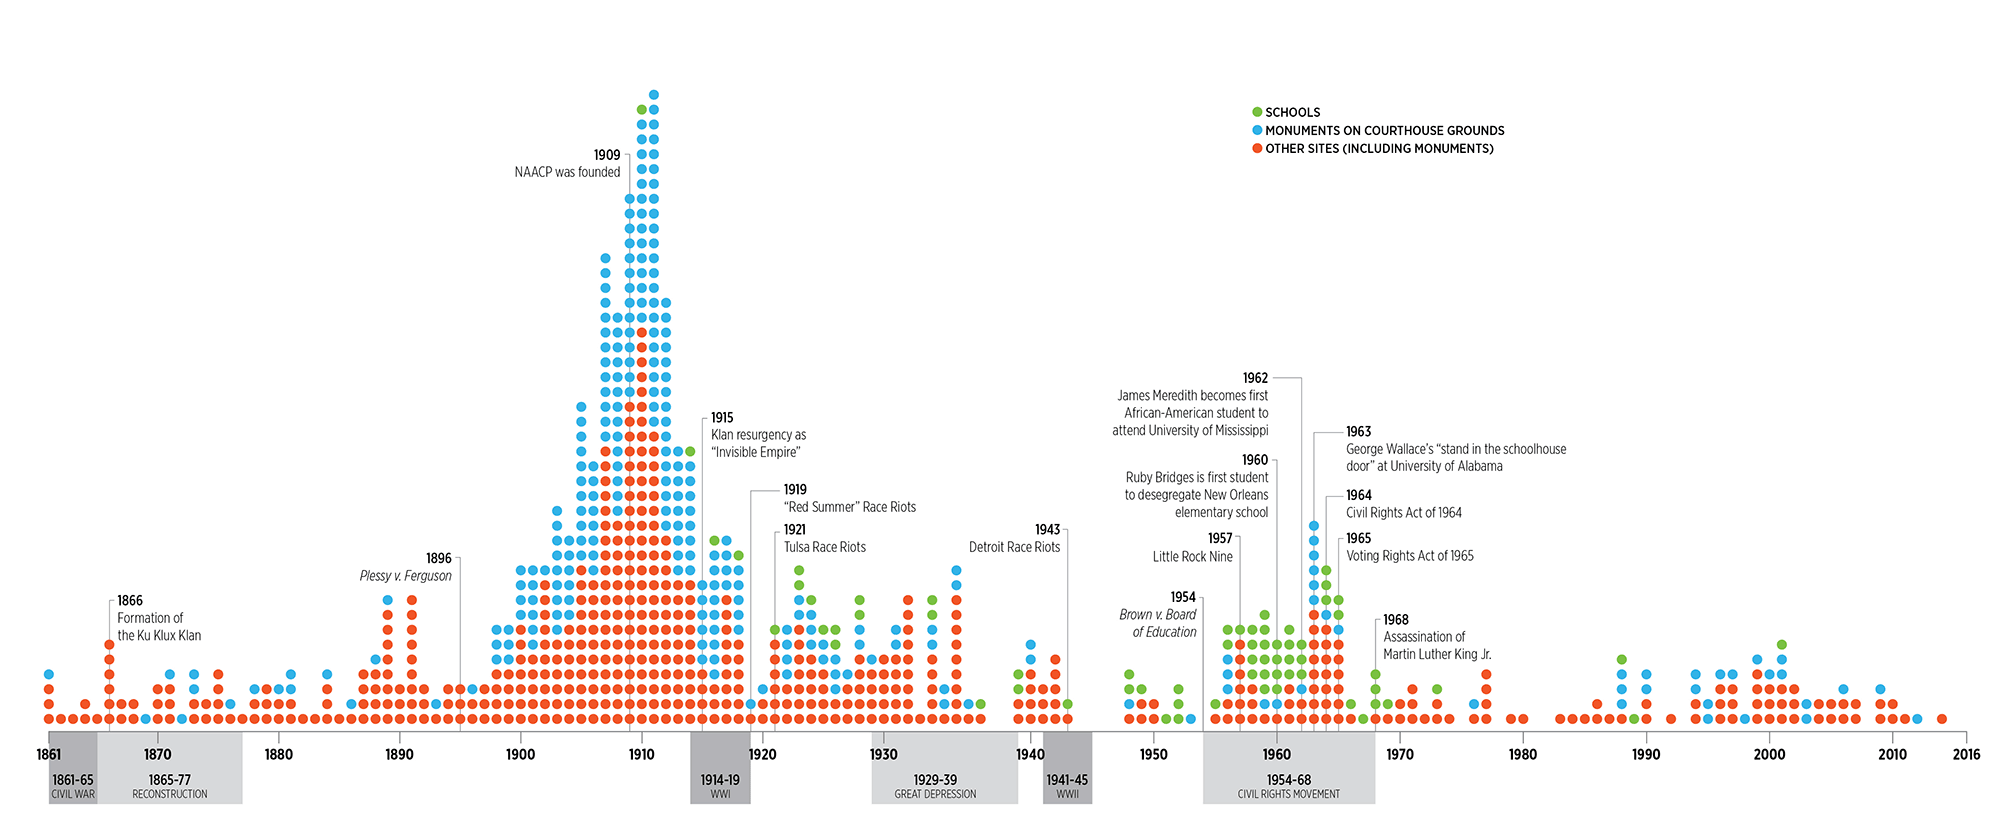 Installation of Confederate monuments by year (Image Credit: Southern Poverty Law Center)